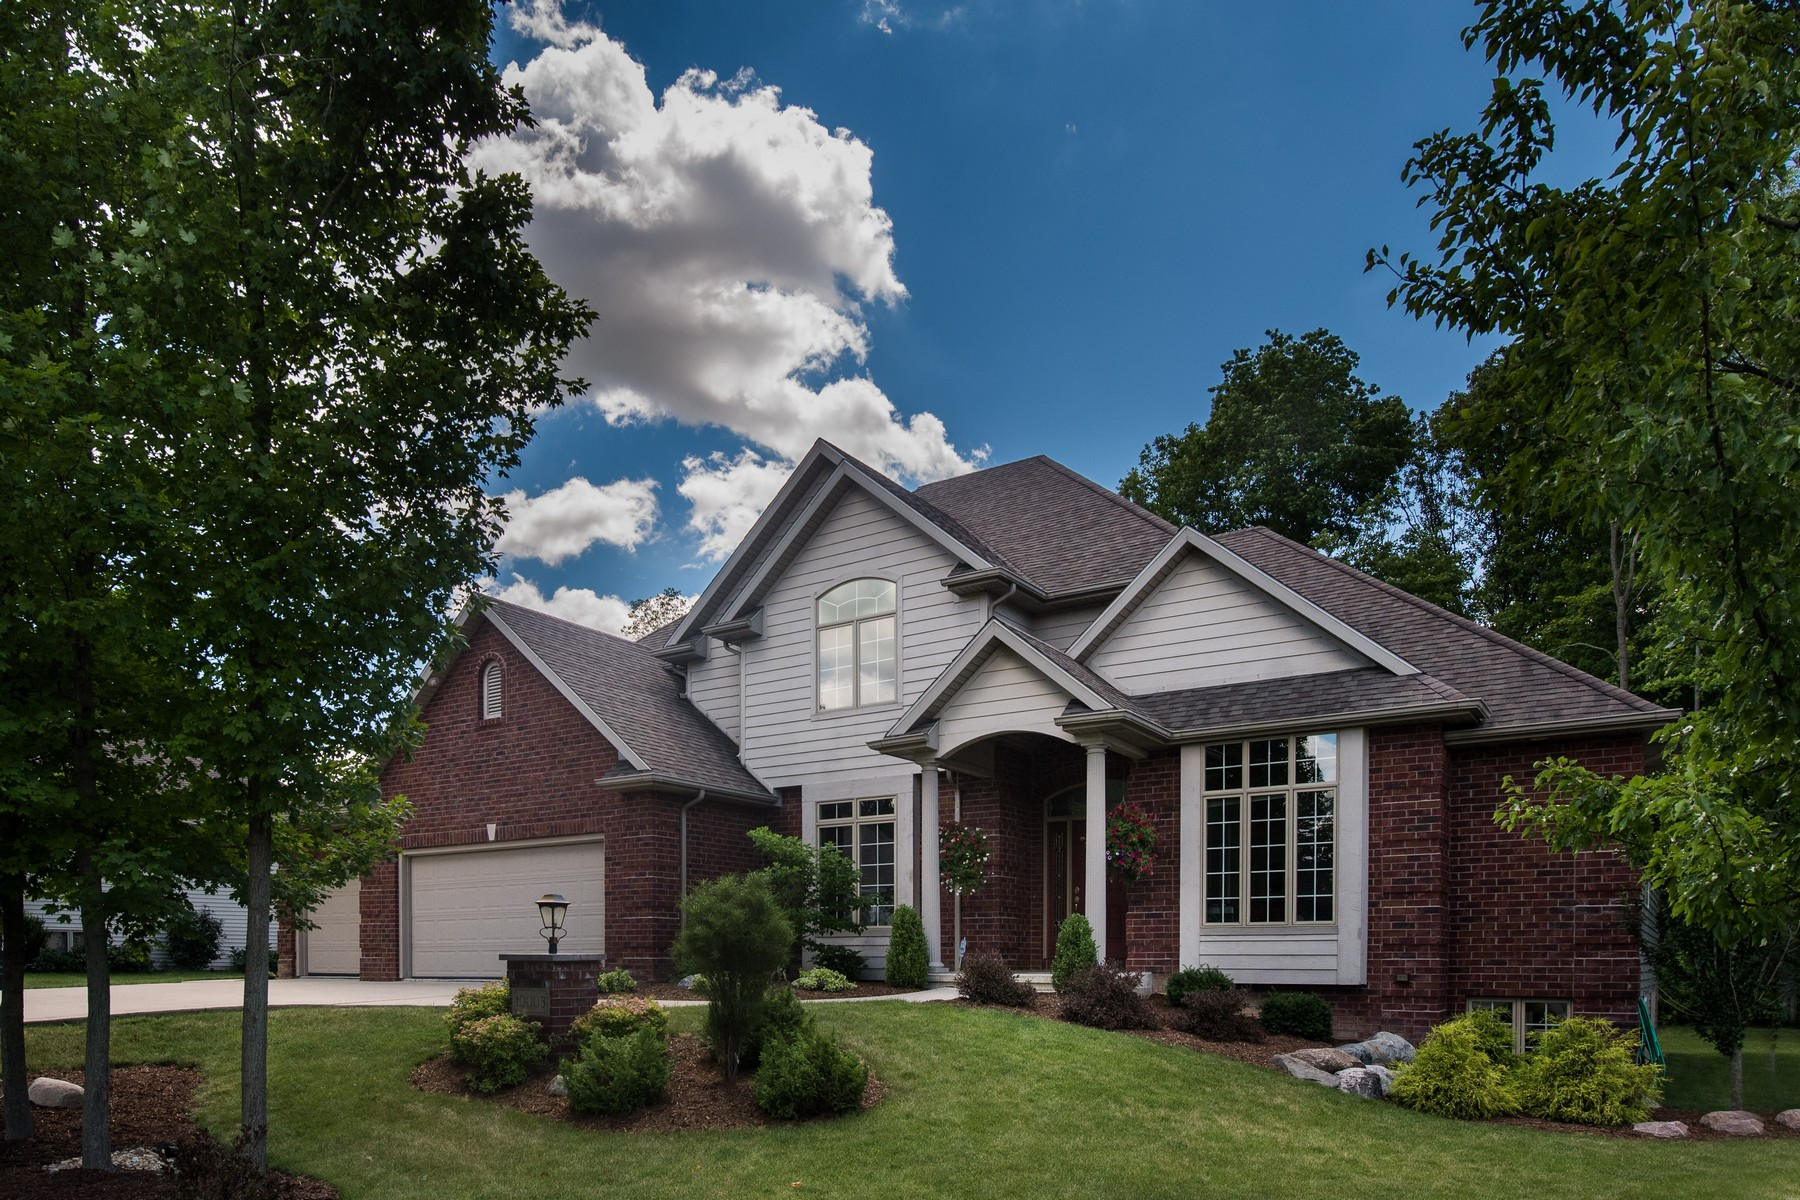 Single Family Home for Sale at Classic and Refined 10003 Agora Place Fort Wayne, Indiana 46804 United States